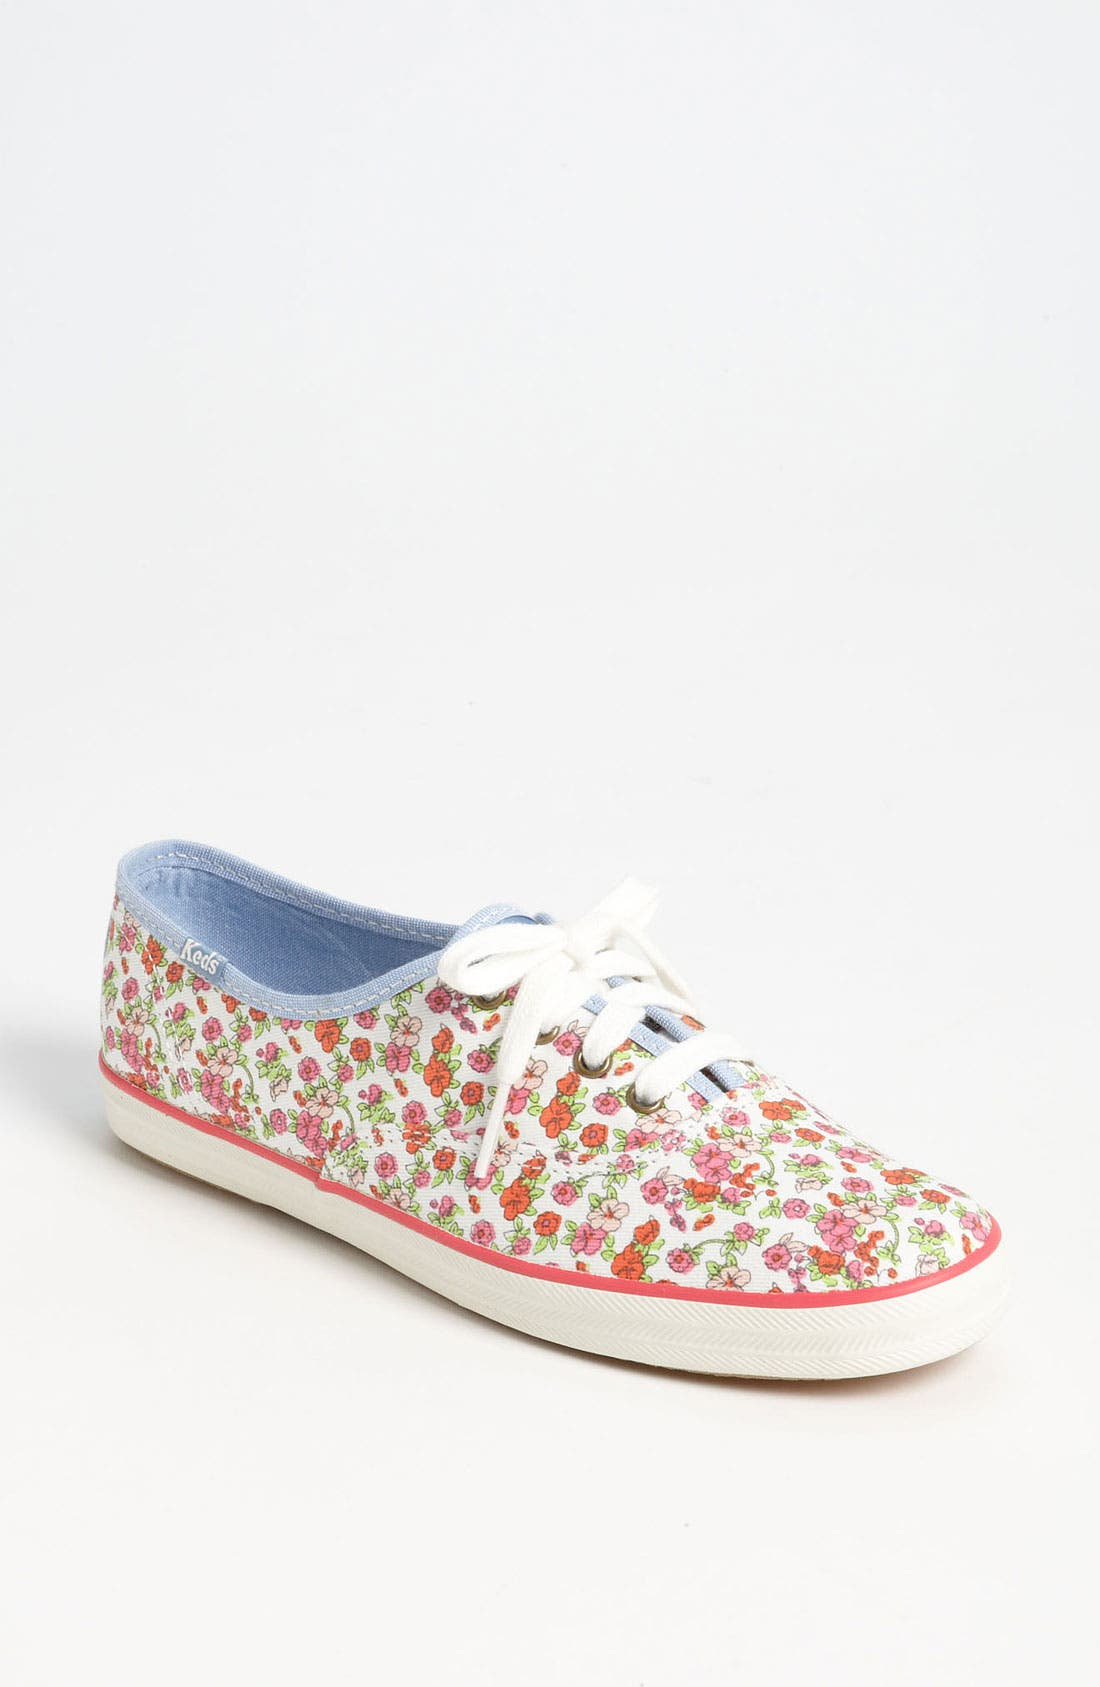 Alternate Image 1 Selected - Keds® 'Champion - Floral' Sneaker (Women)